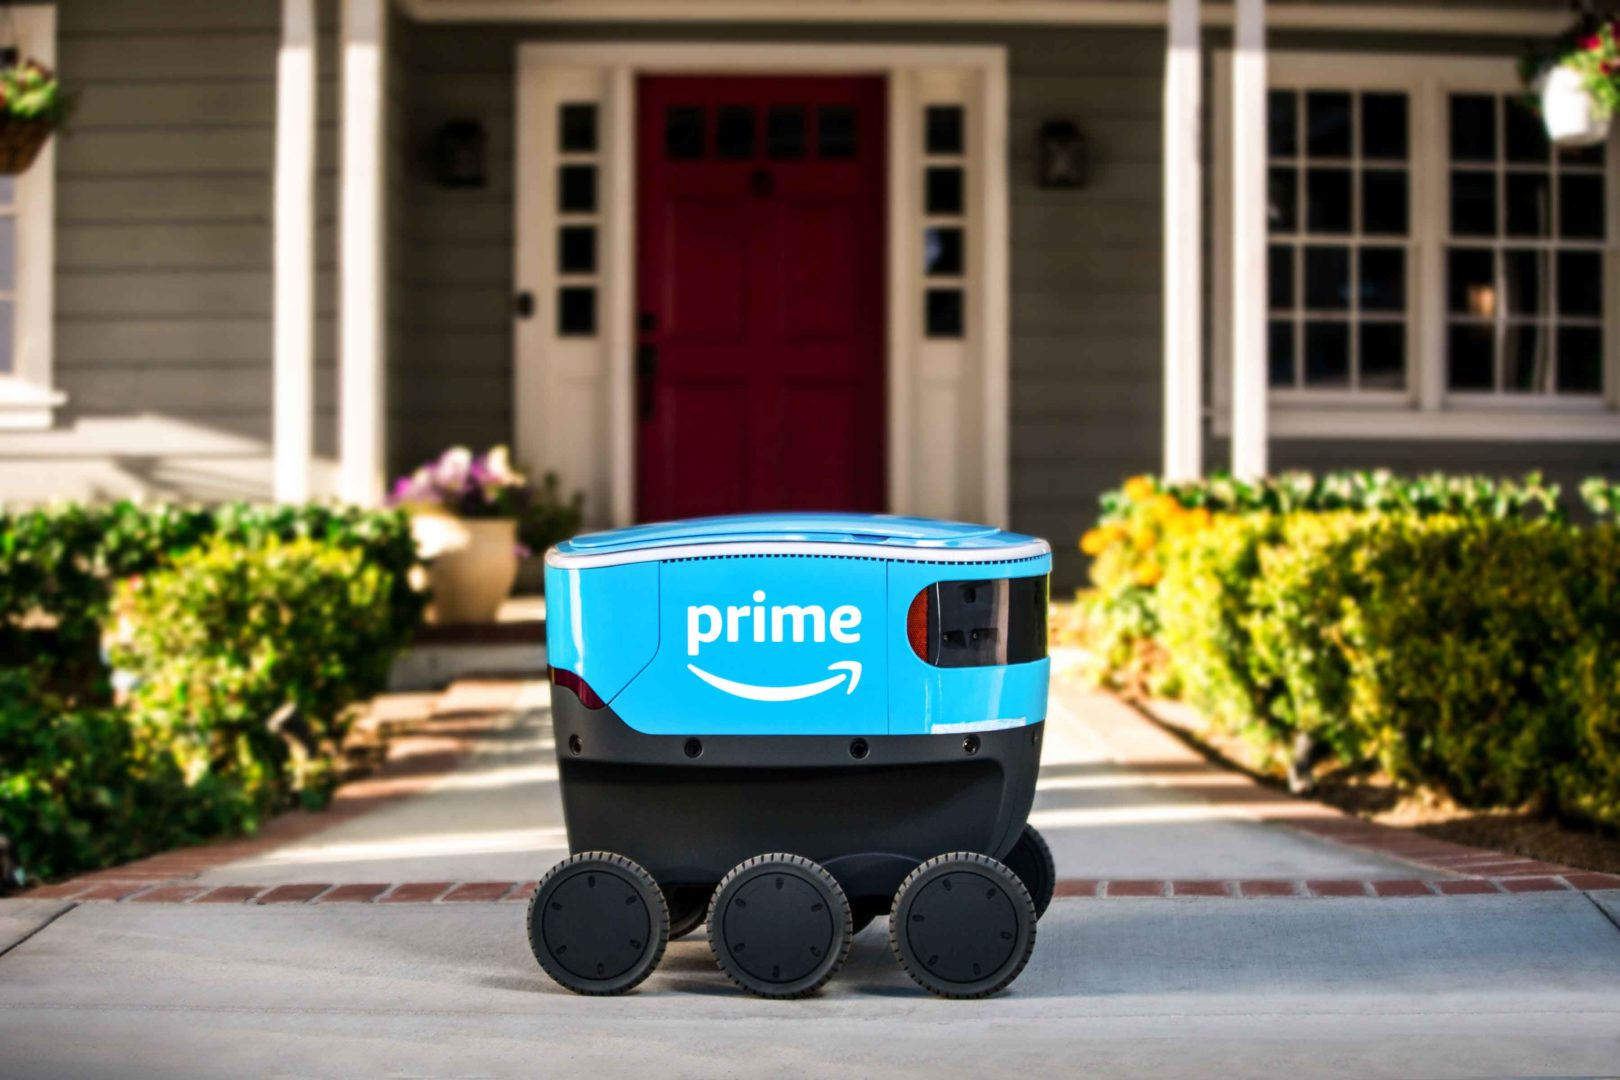 Amazon release scout for autonomous delivery service By Amazon